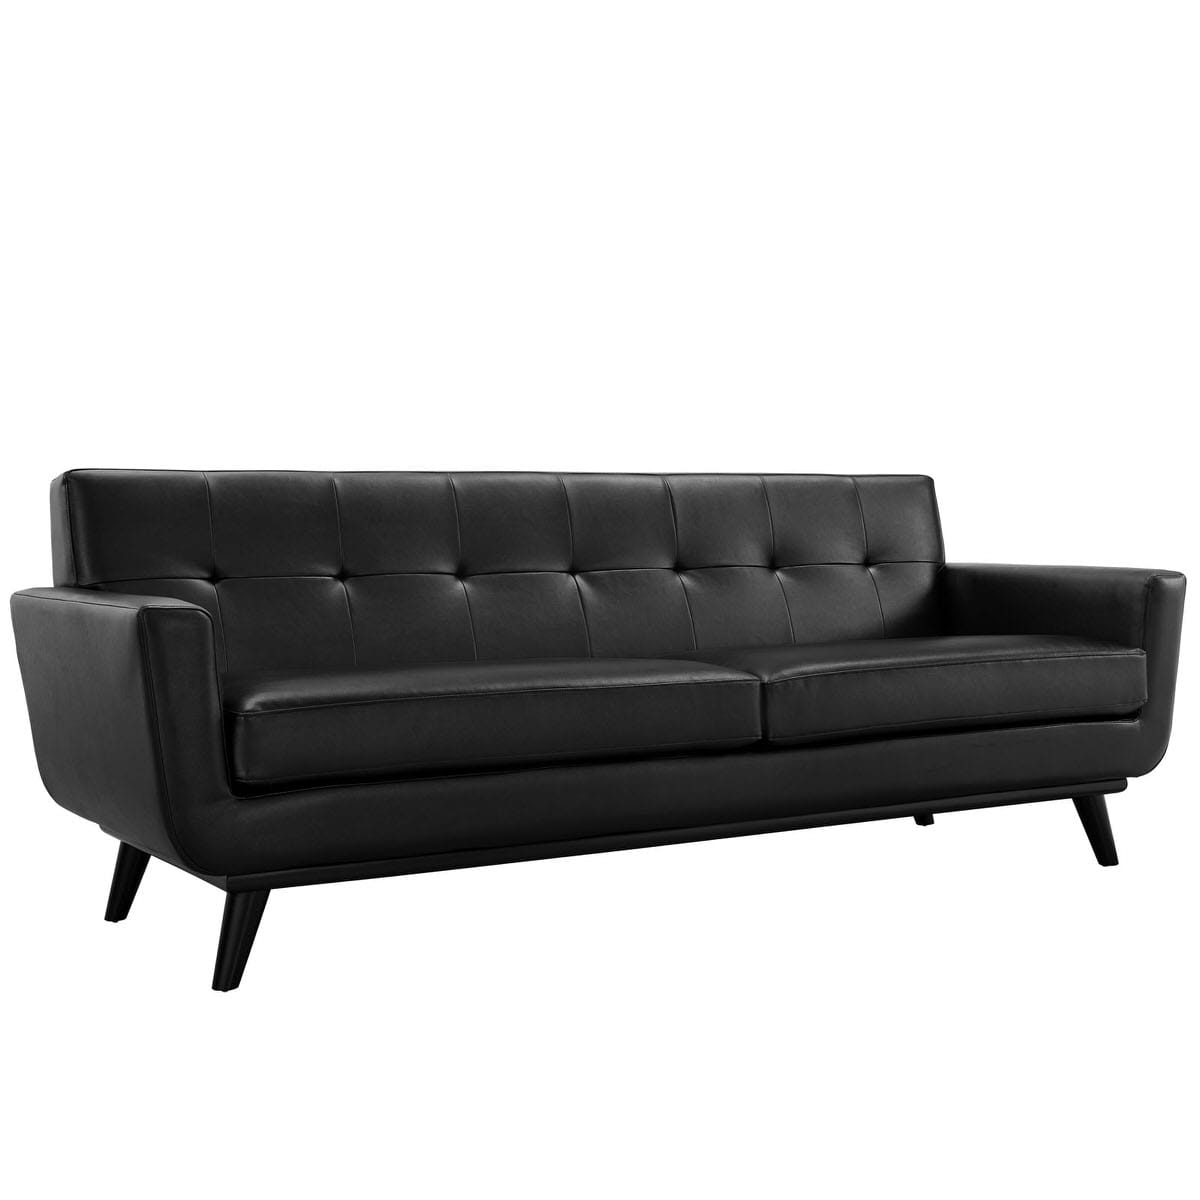 Sensational Engage Bonded Leather Sofa Black By Modern Living Gamerscity Chair Design For Home Gamerscityorg